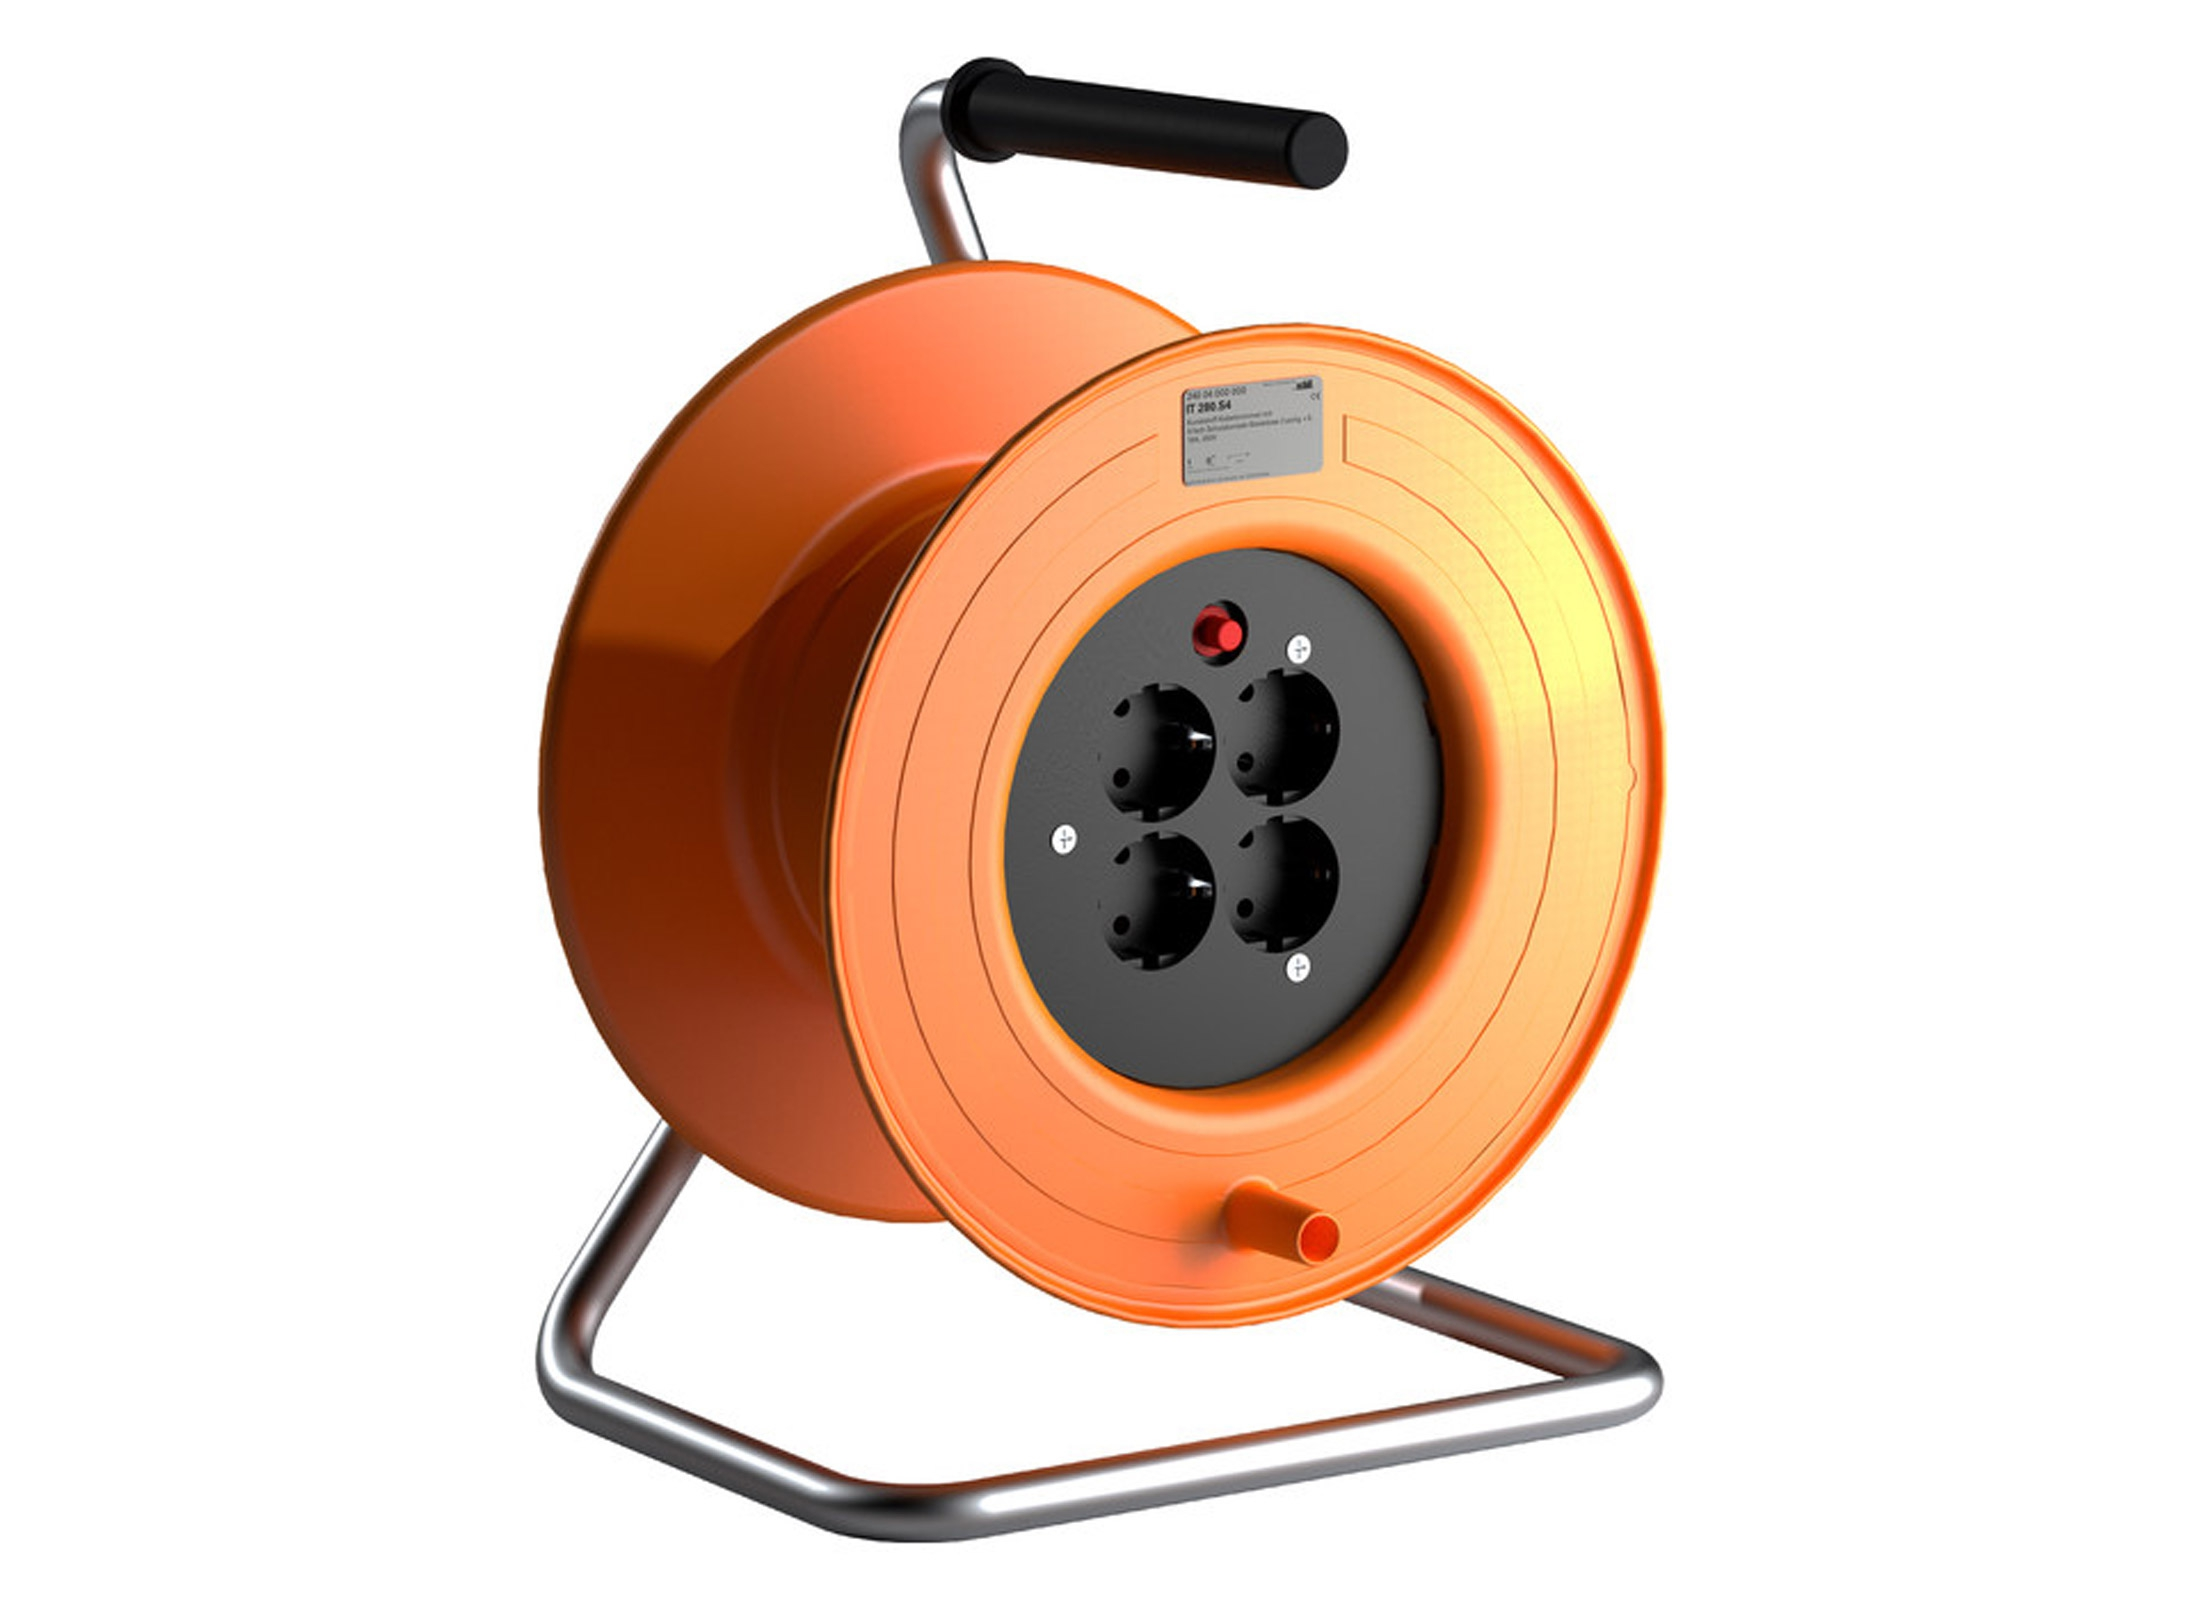 Cable Reels Without Cable : Schill it s plastic cable reel online at low prices